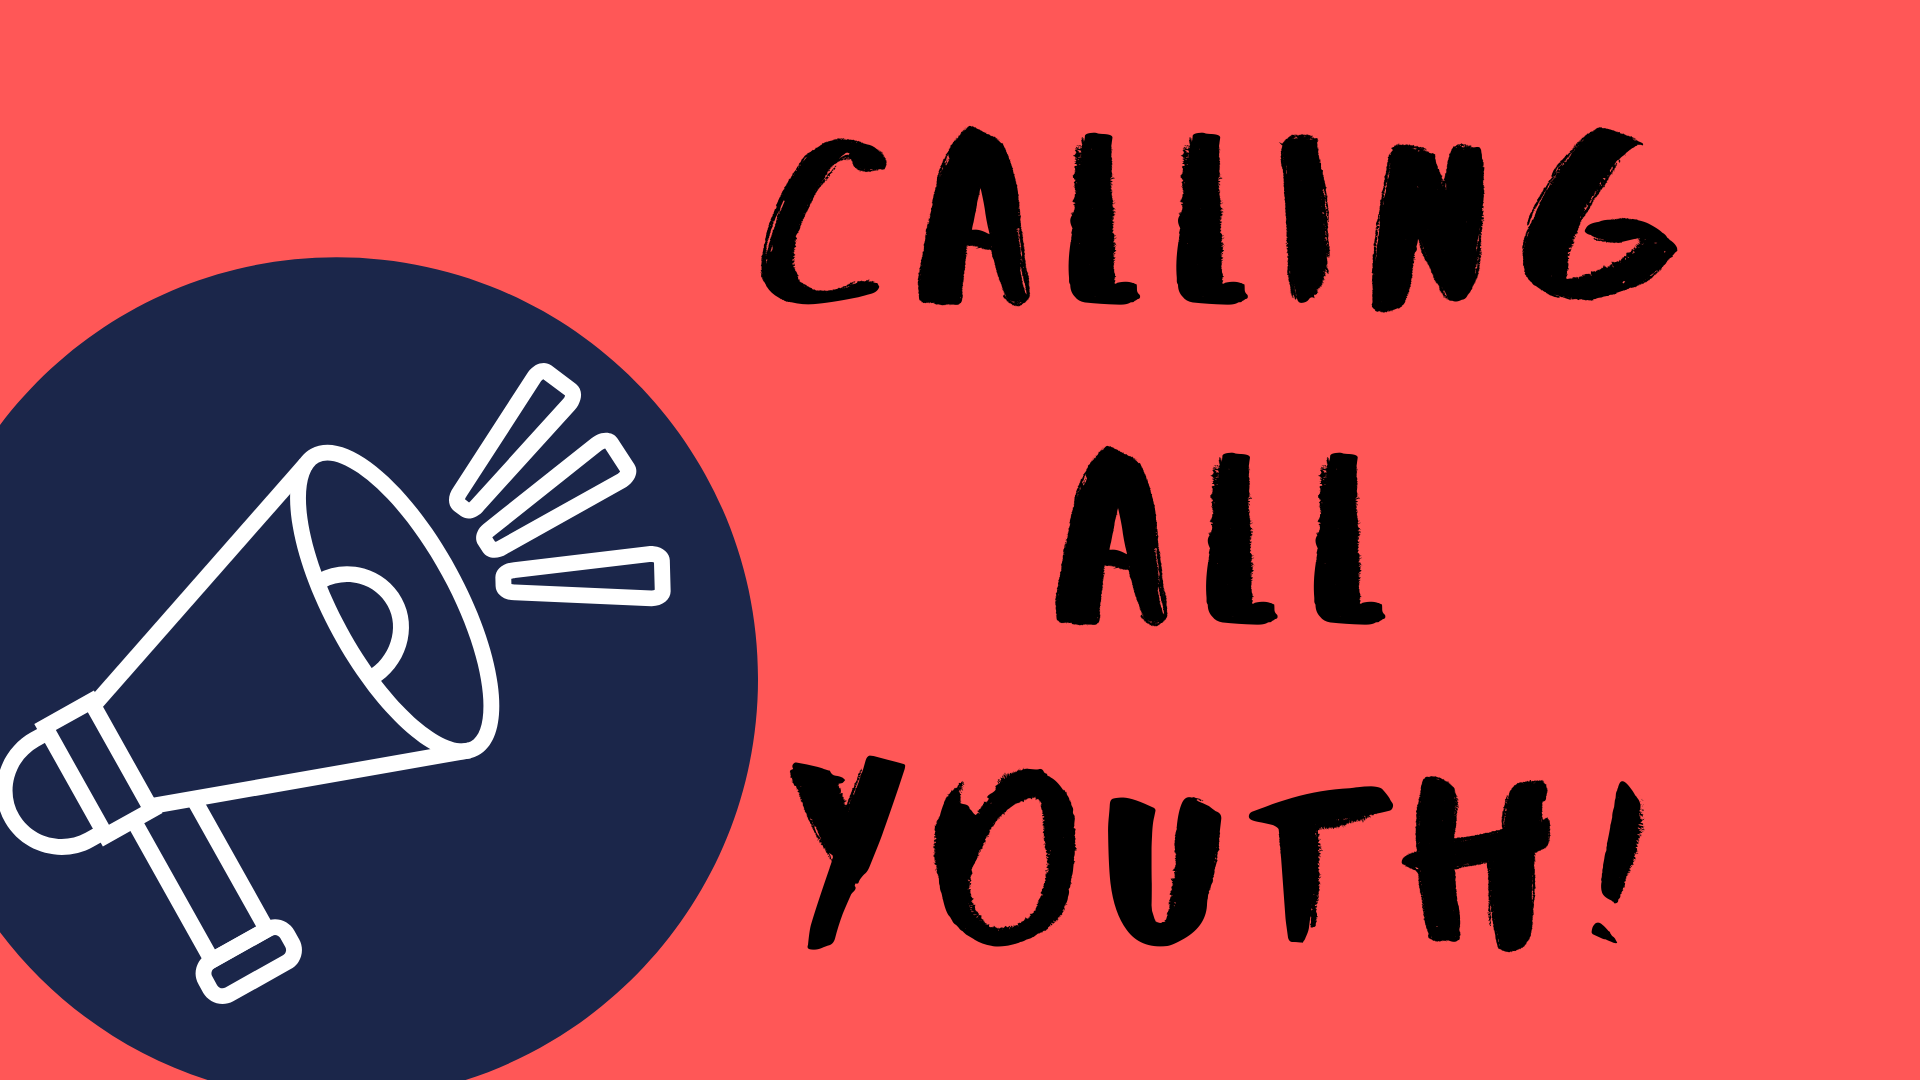 Calling all Youth! image